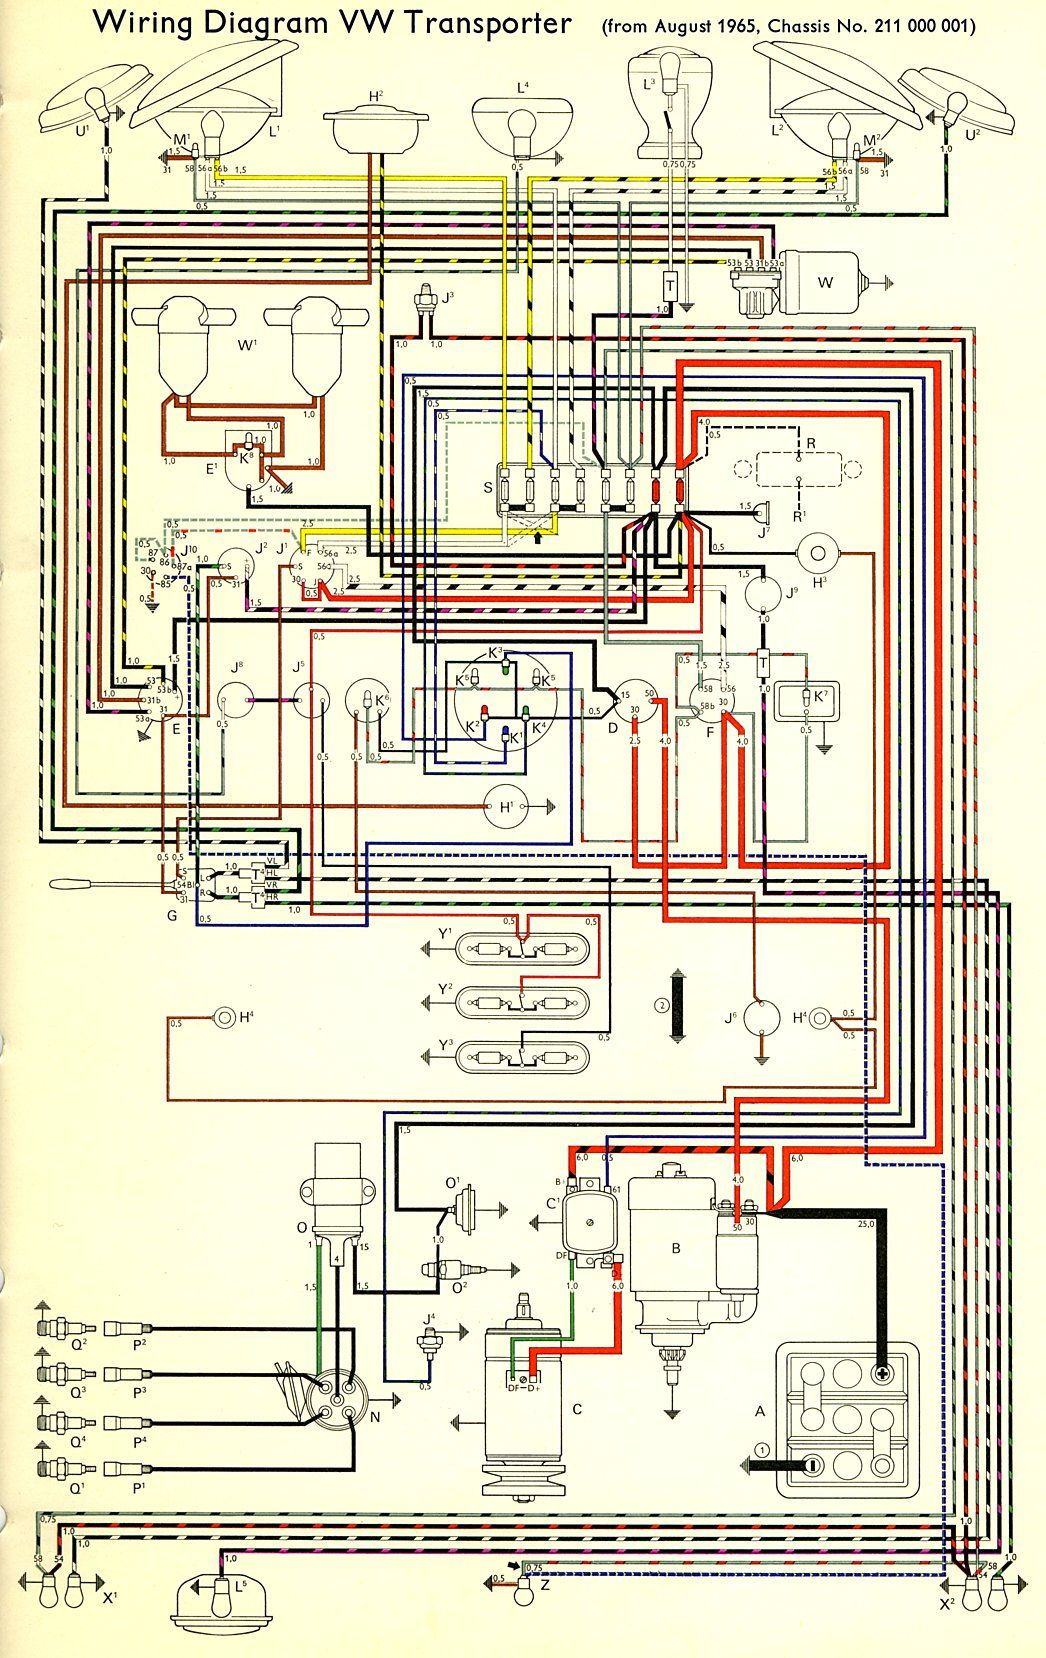 wiring diagram for t5 conversion wiring diagramvw t5 wiring diagram wiring diagram optionvw t5 wiring diagram [ 1046 x 1658 Pixel ]